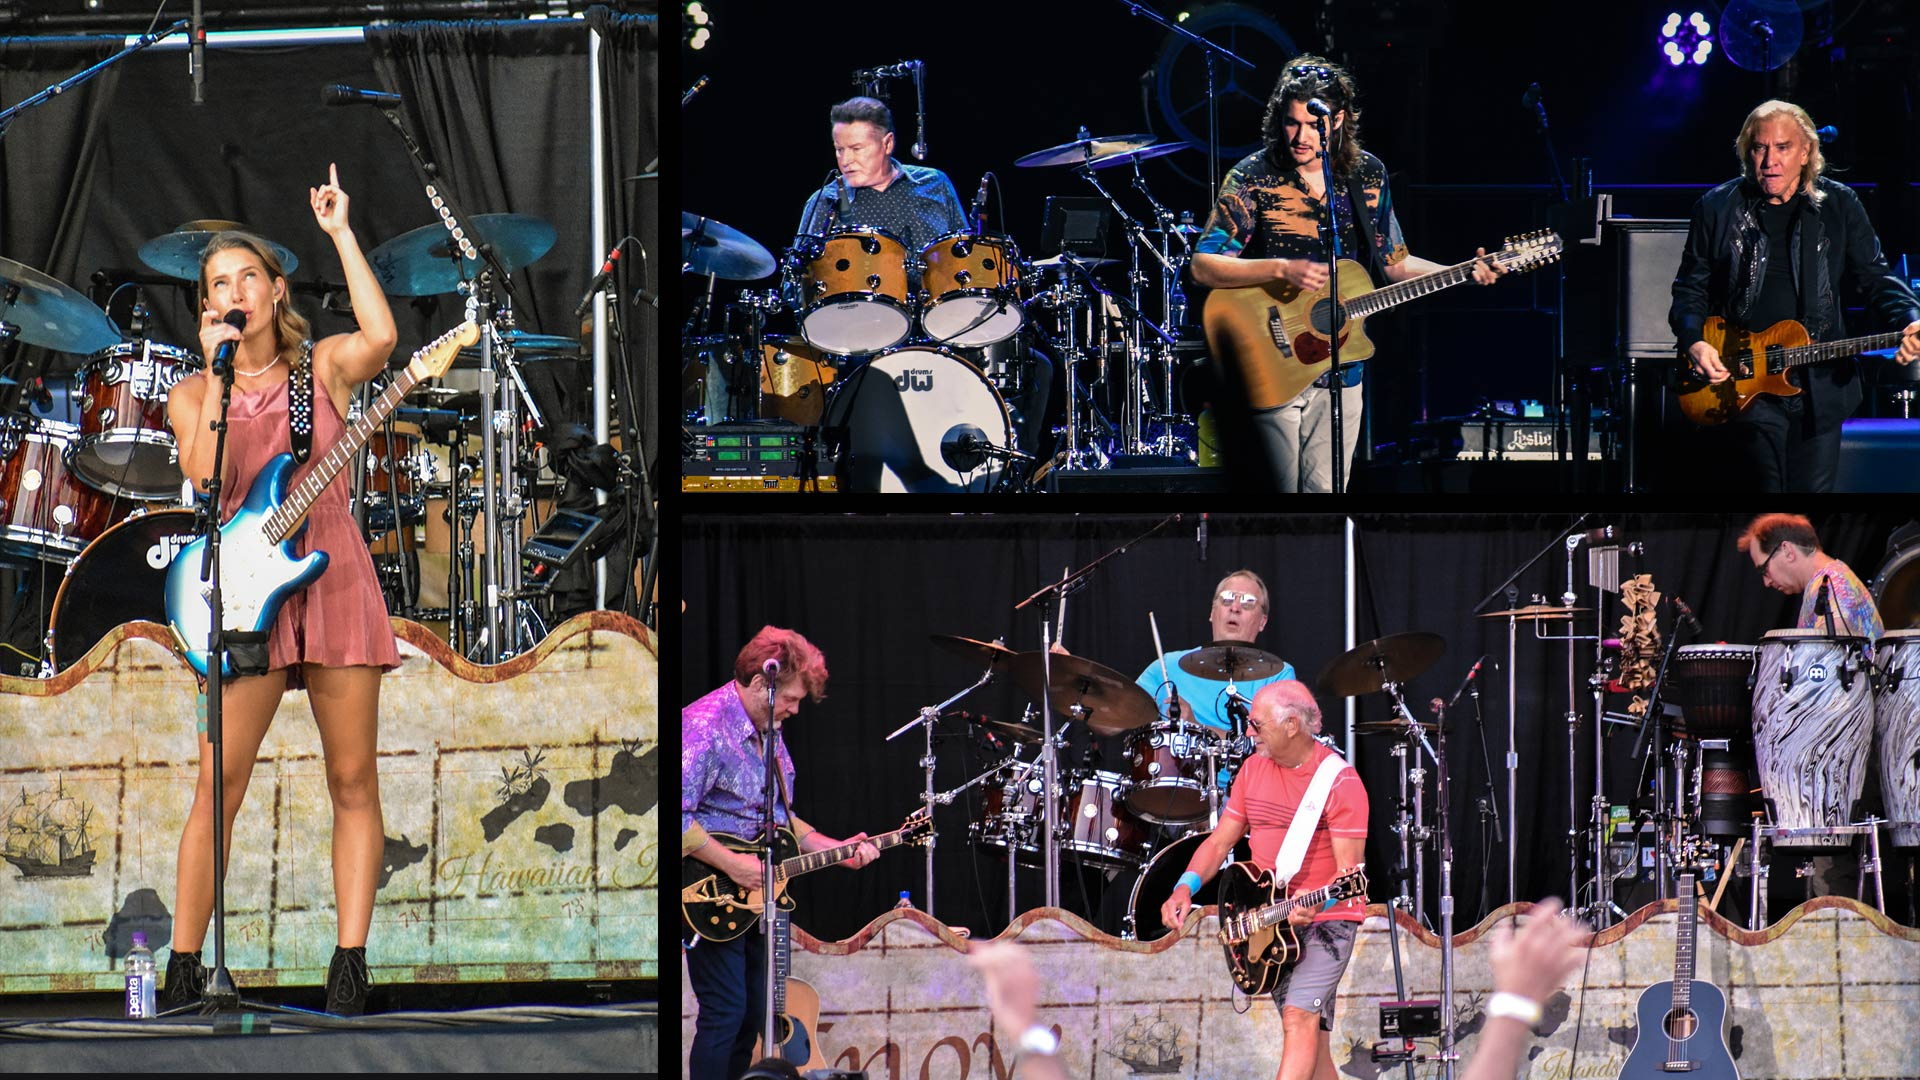 Sold Out: The Eagles, Jimmy Buffett and the Coral Reef Band and Caroline Jones